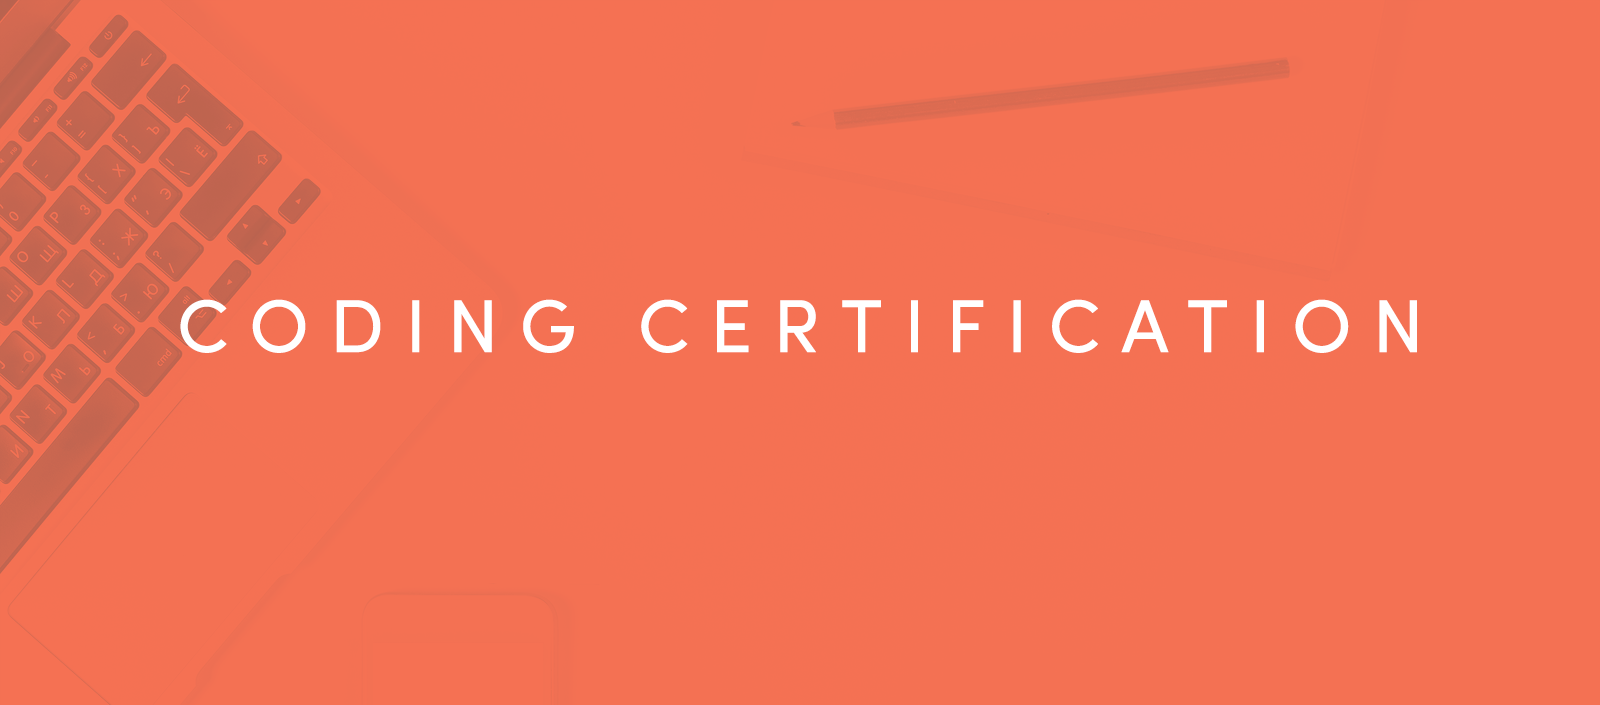 Coding is one of the skills needed to get that leverage in this digital age. Coding certification does not just boost your resume; it provides you better control of your site and your career track in general.